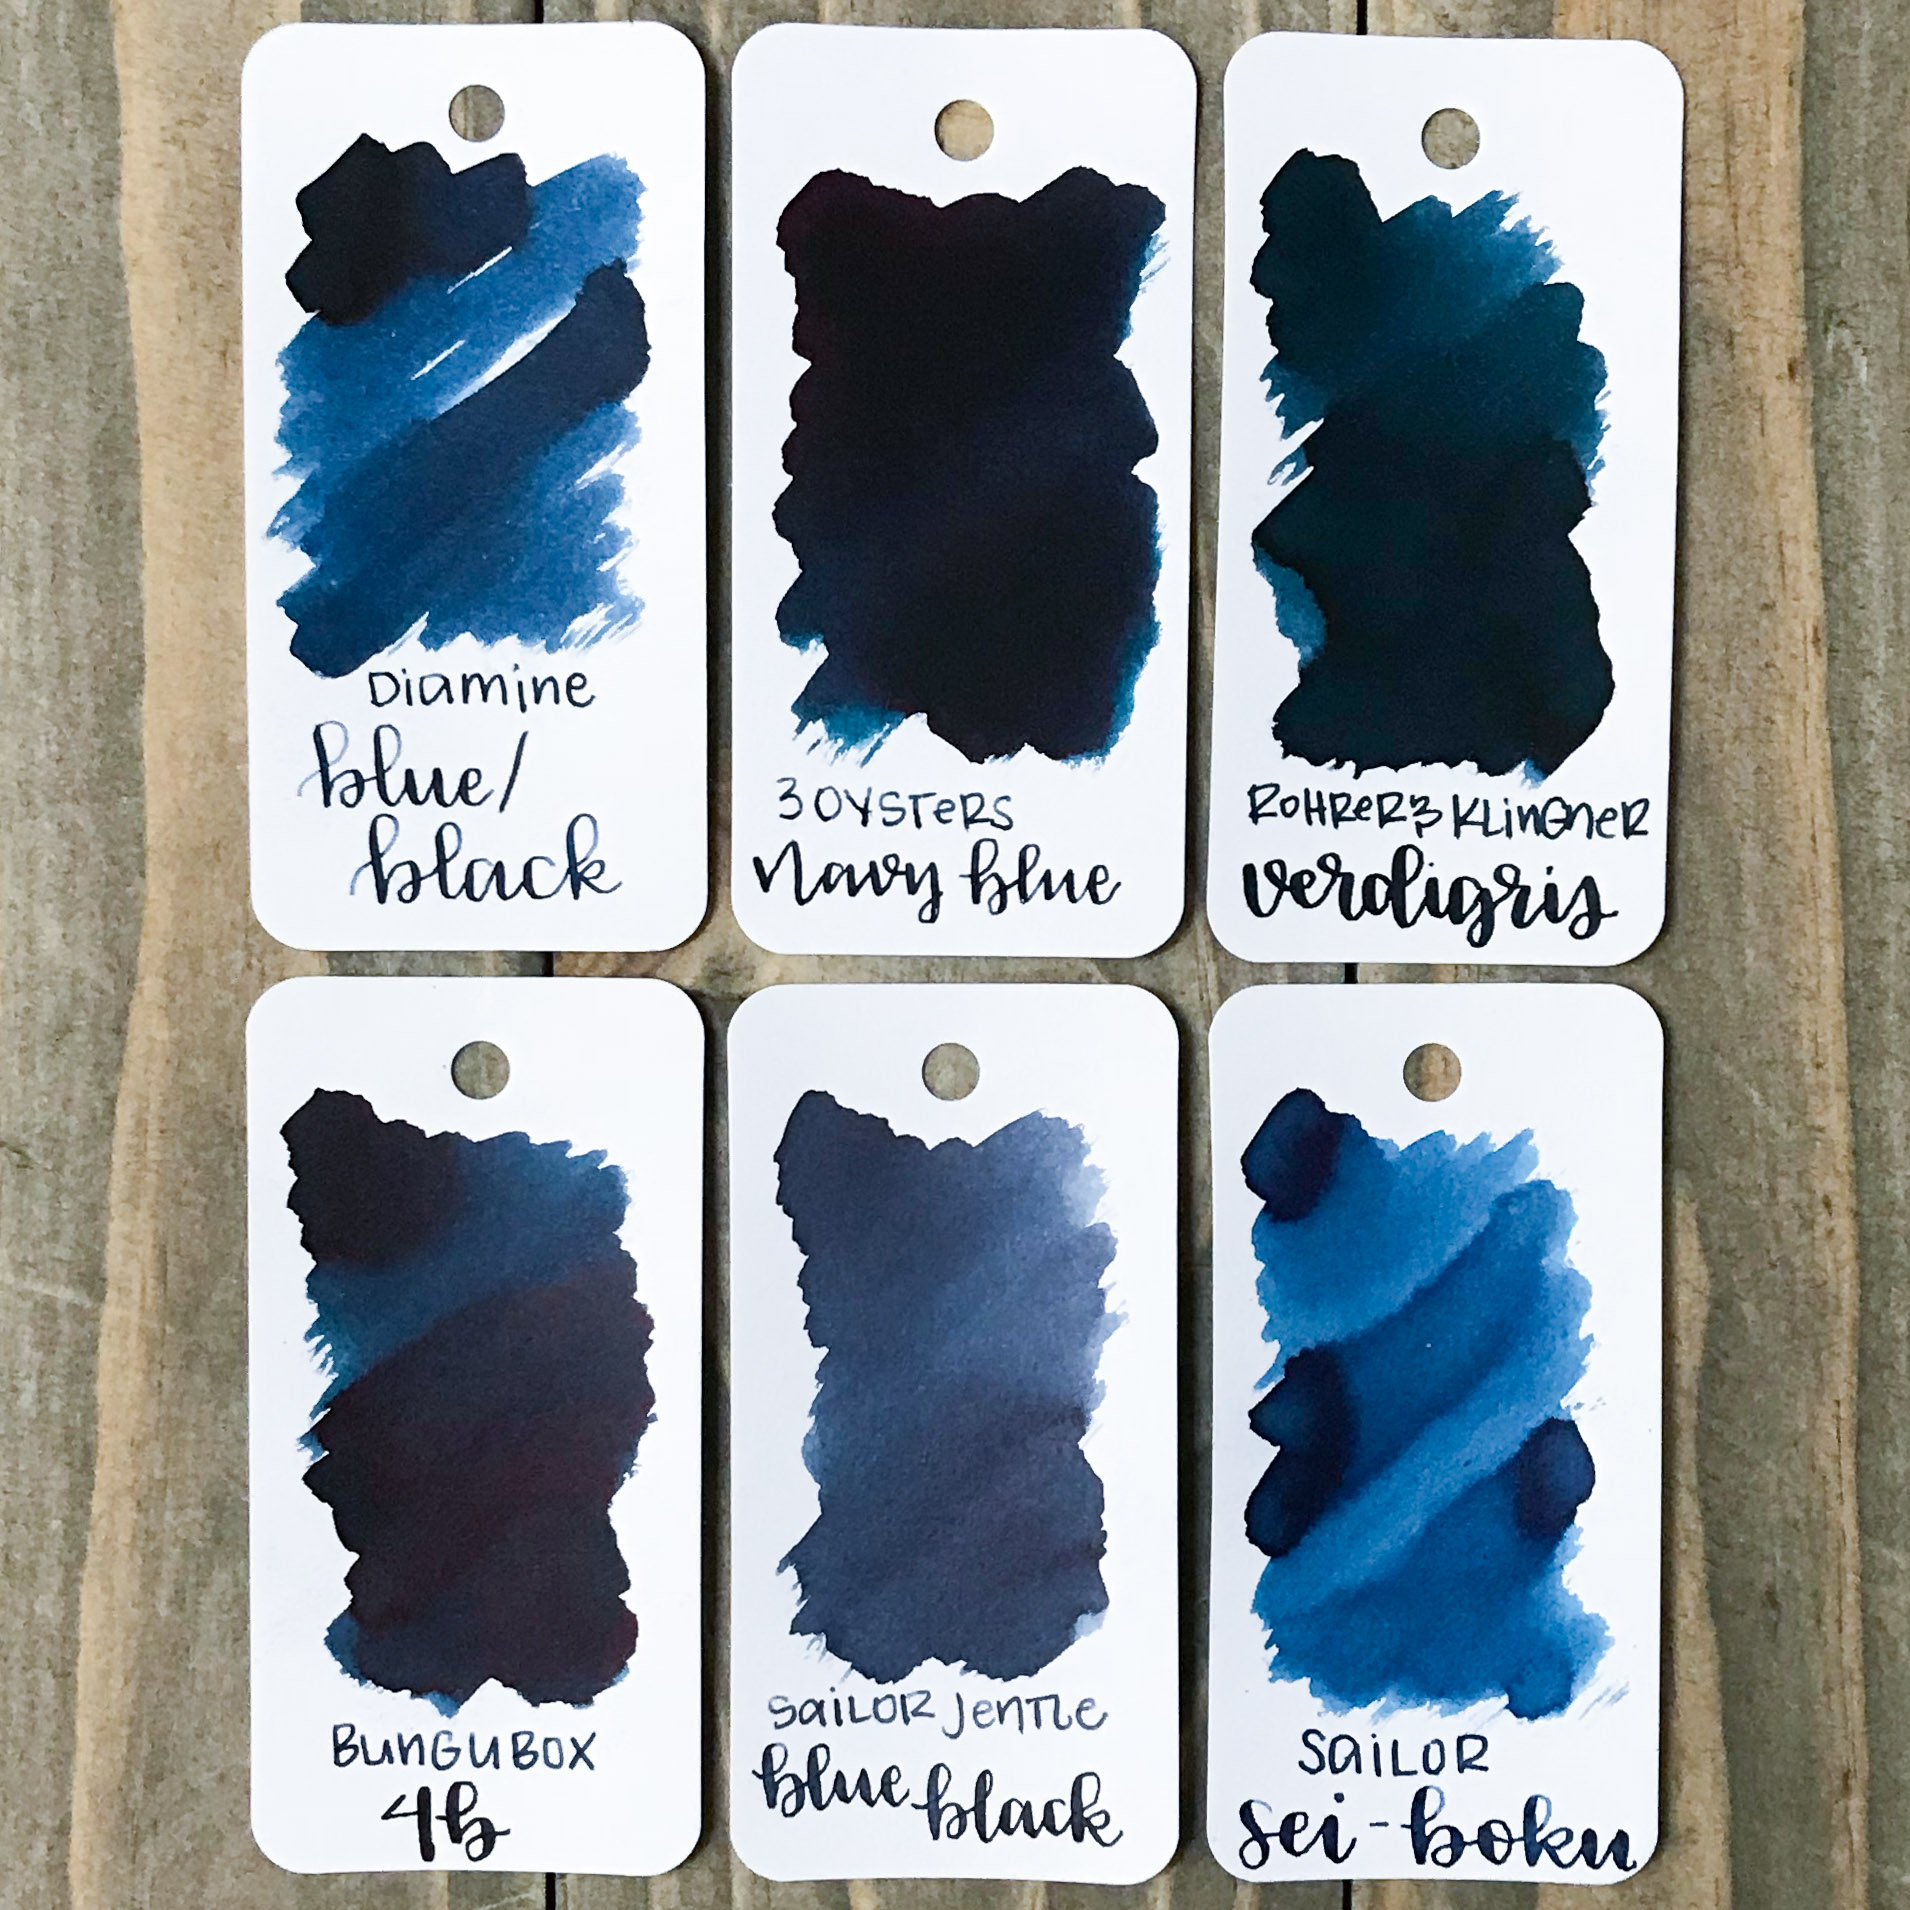 Similar inks: - Navy Blue is closest to Verdigris and 4B.